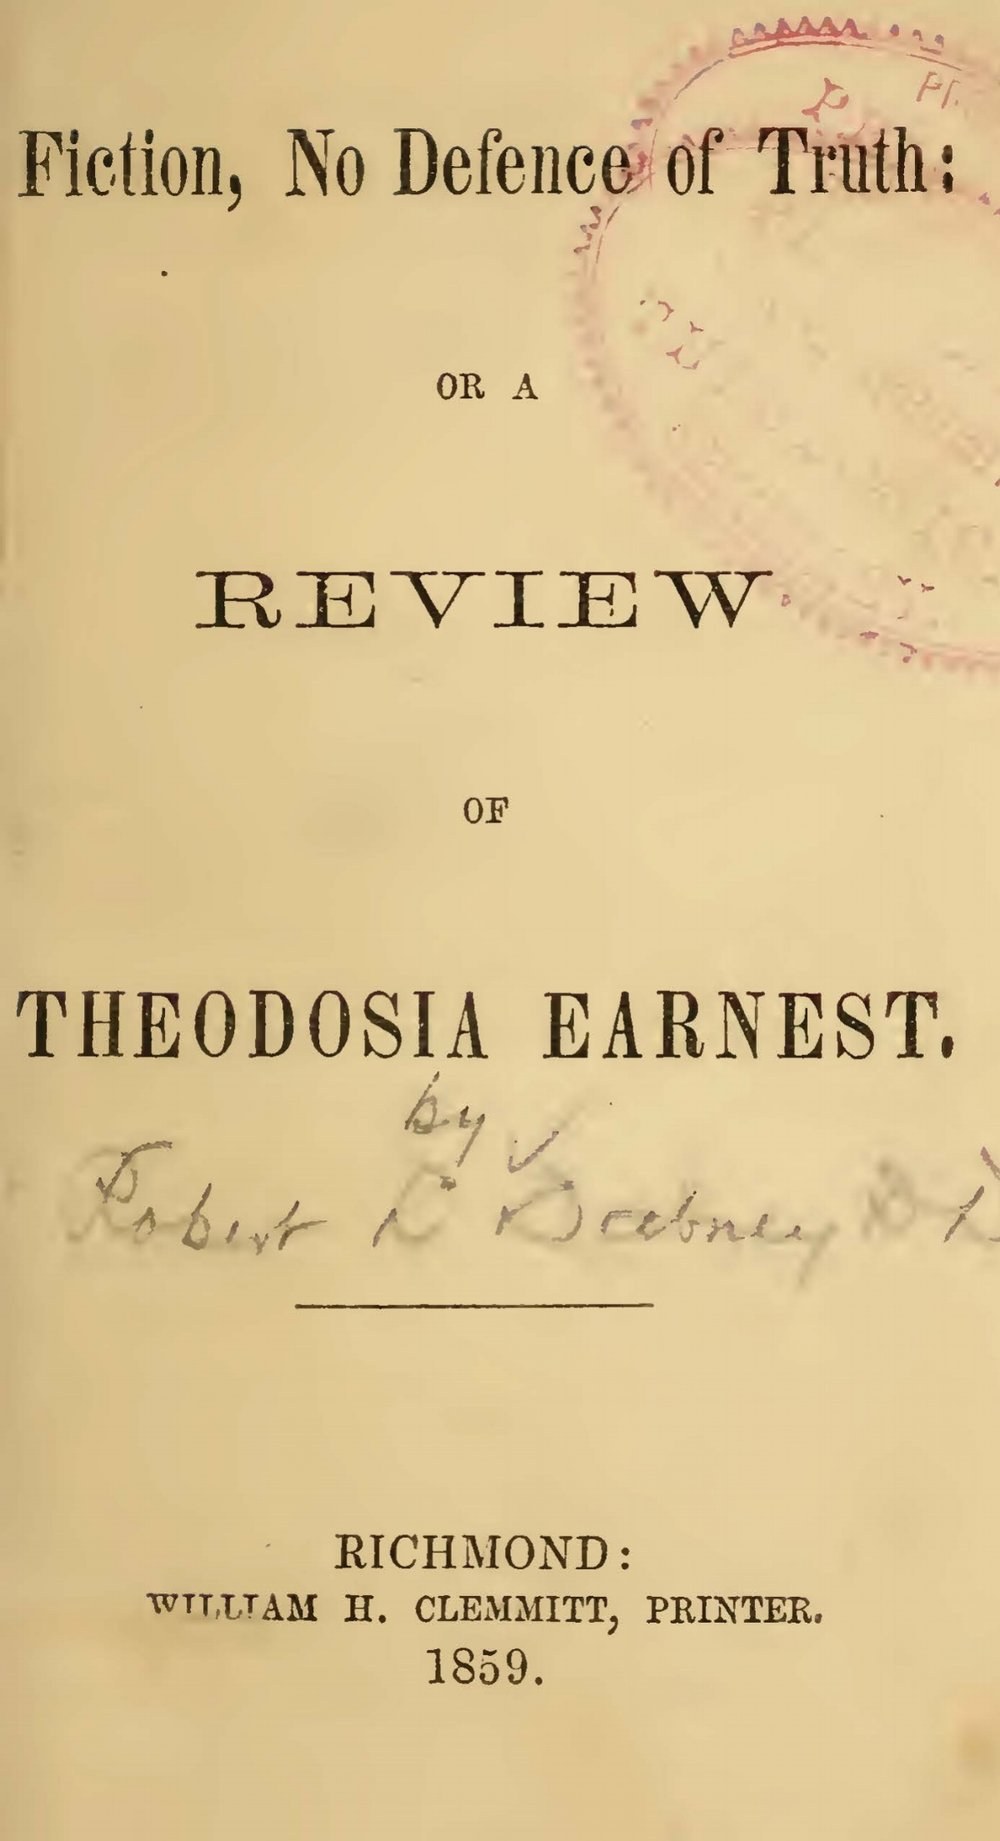 Dabney, Robert Lewis, Fiction, No Defence of Truth, or, A Review of Theodosia Earnest Title Page.jpg